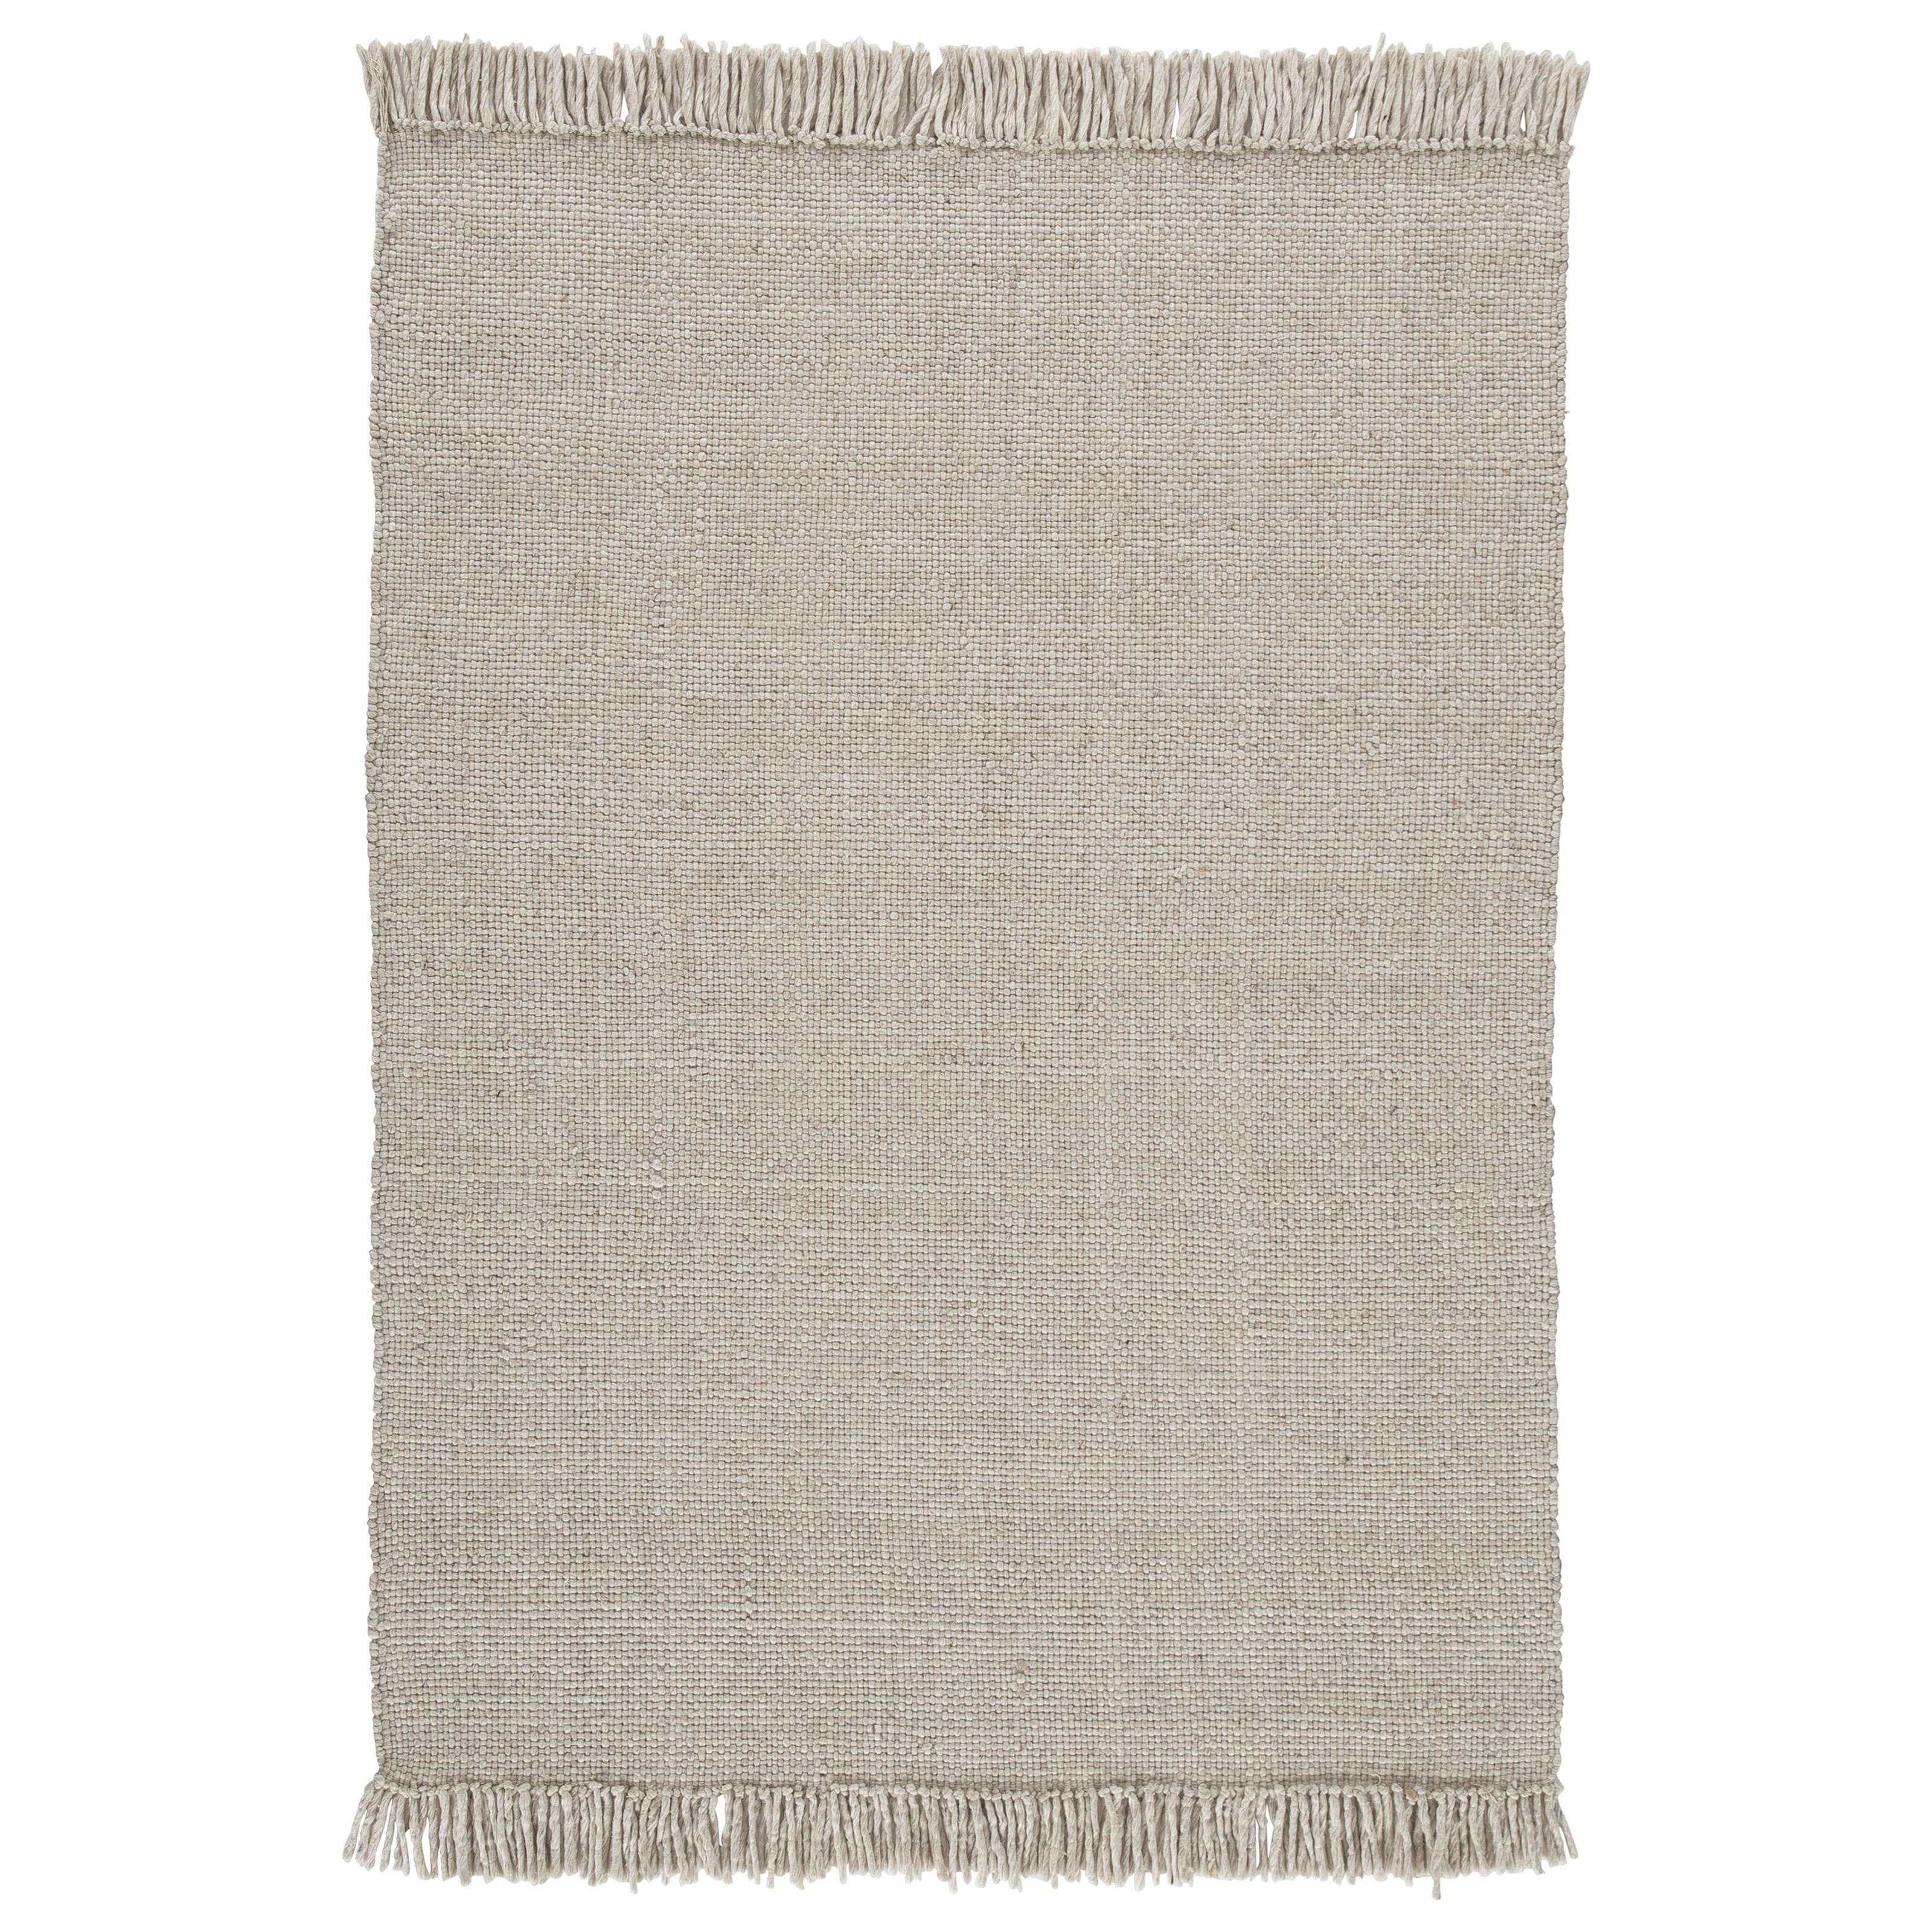 Casual Area Rugs Mariano Cream/Brown Medium Rug by Signature at Walker's Furniture